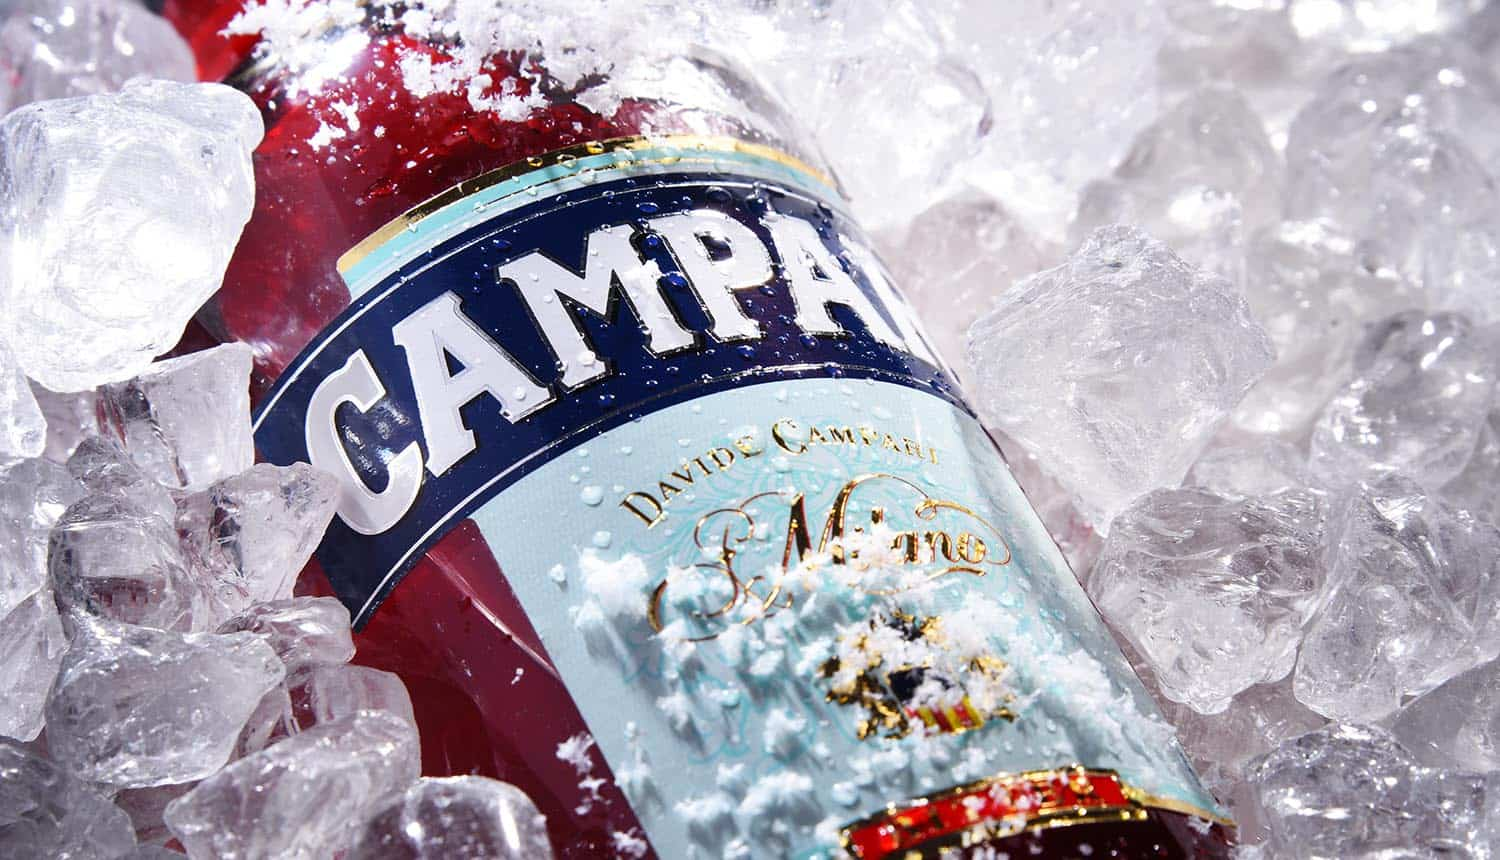 Bottle of Campari showing ransomware attack with Facebook Ads that adds pressure